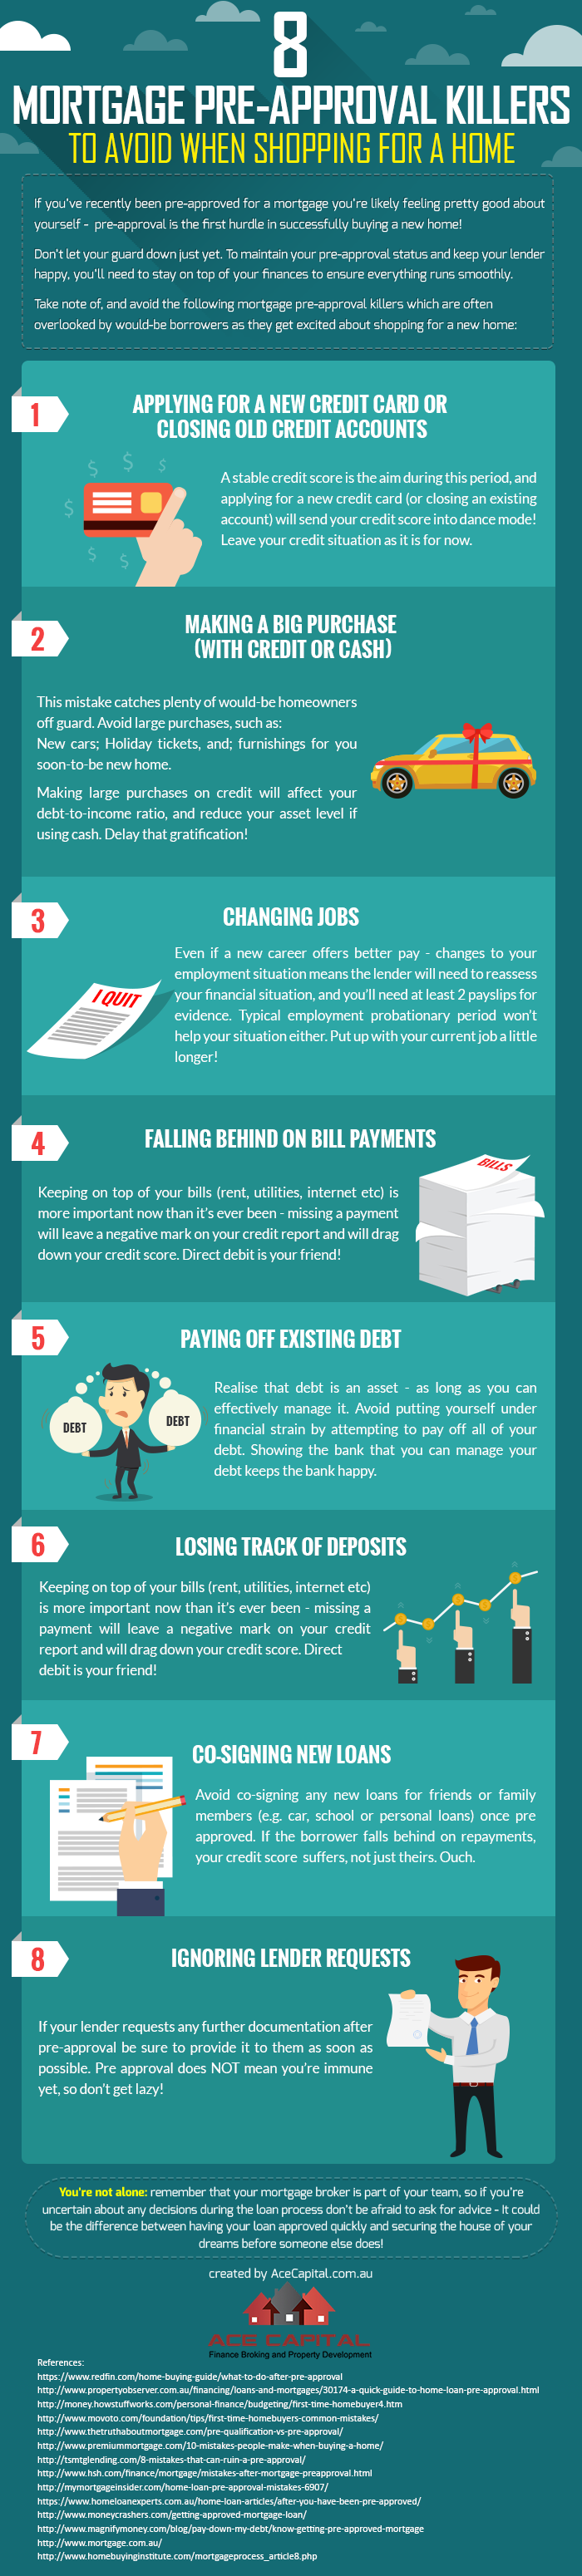 8 mortgage pre-approval killers